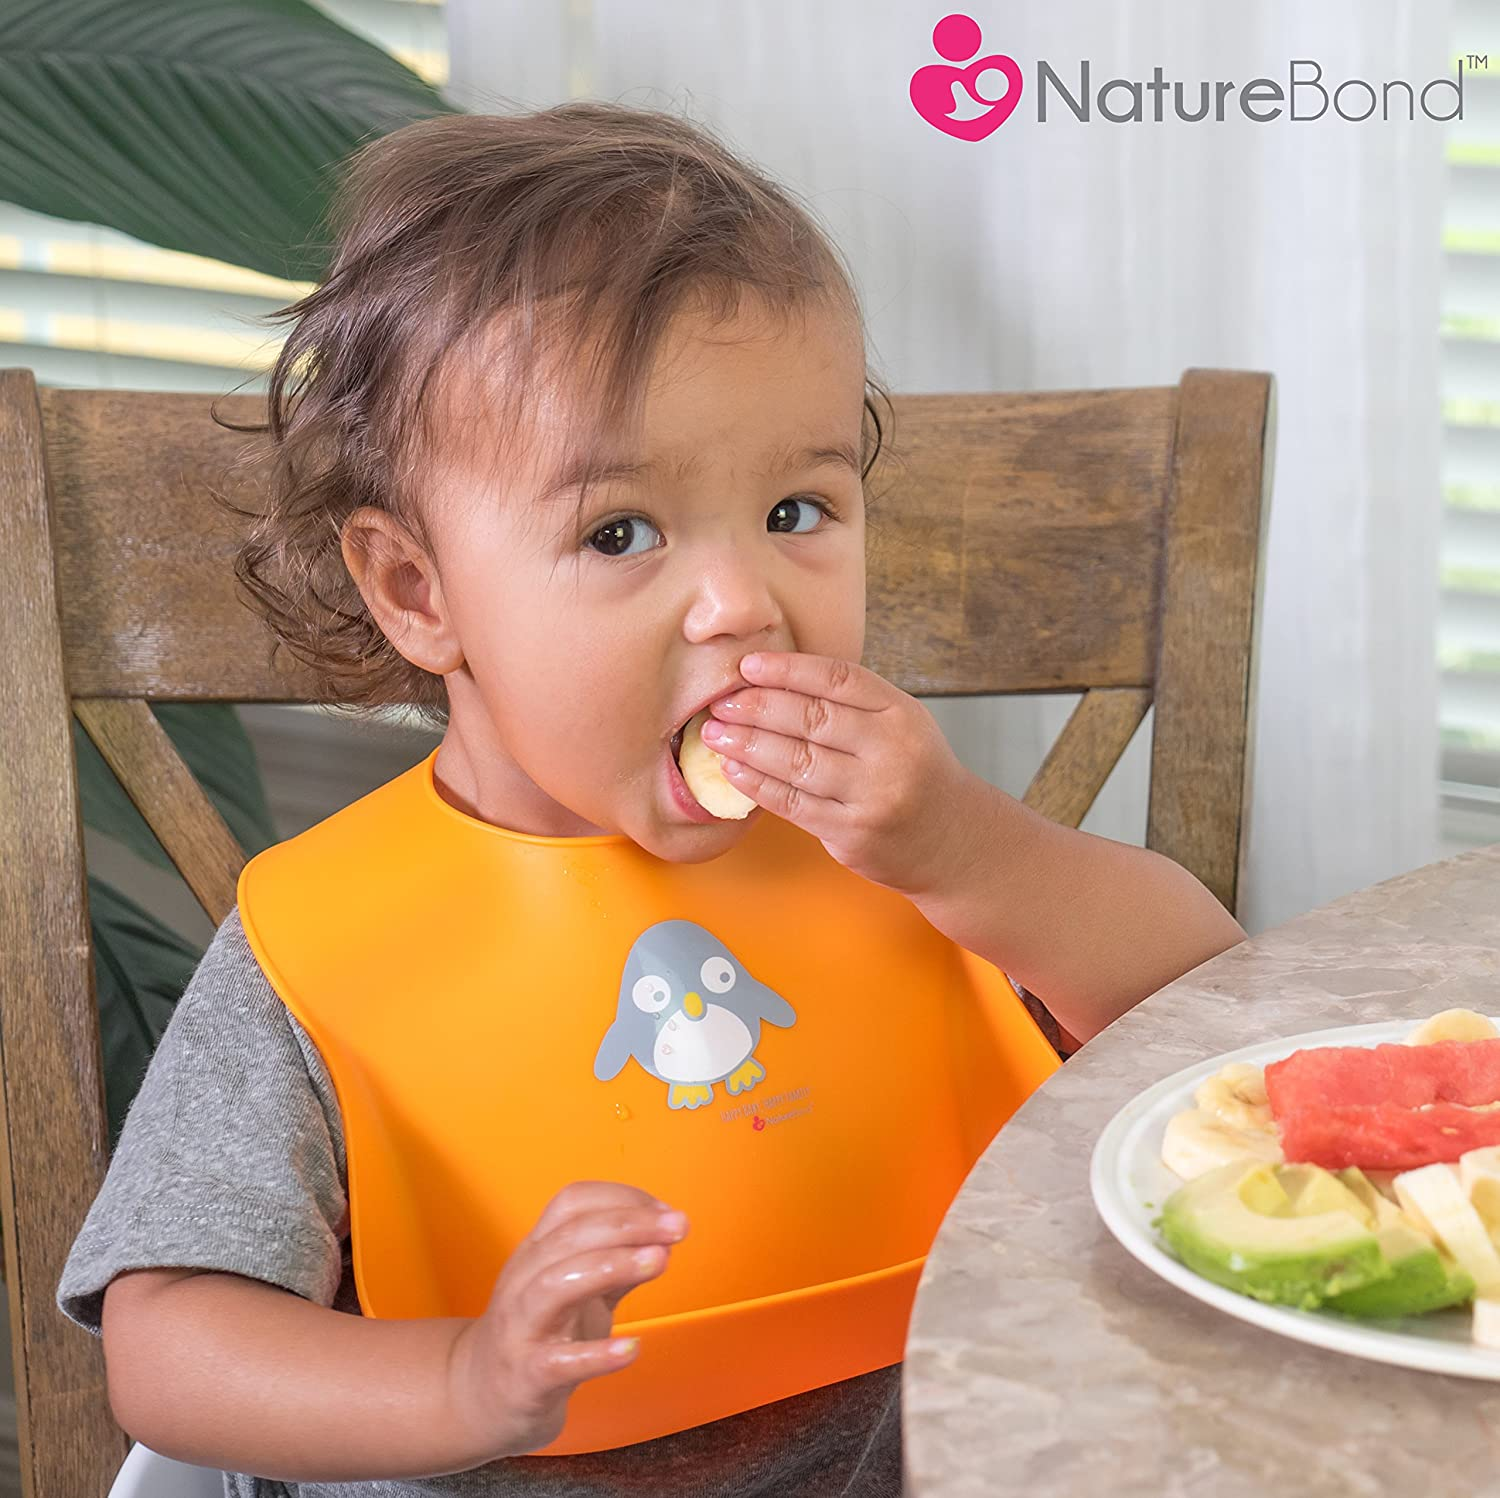 NatureBond Waterproof Silicone Baby Bibs For Babies 2 PCs Cotton Candy Pink /& Macaron Lavender with Waterproof Pouch Toddlers